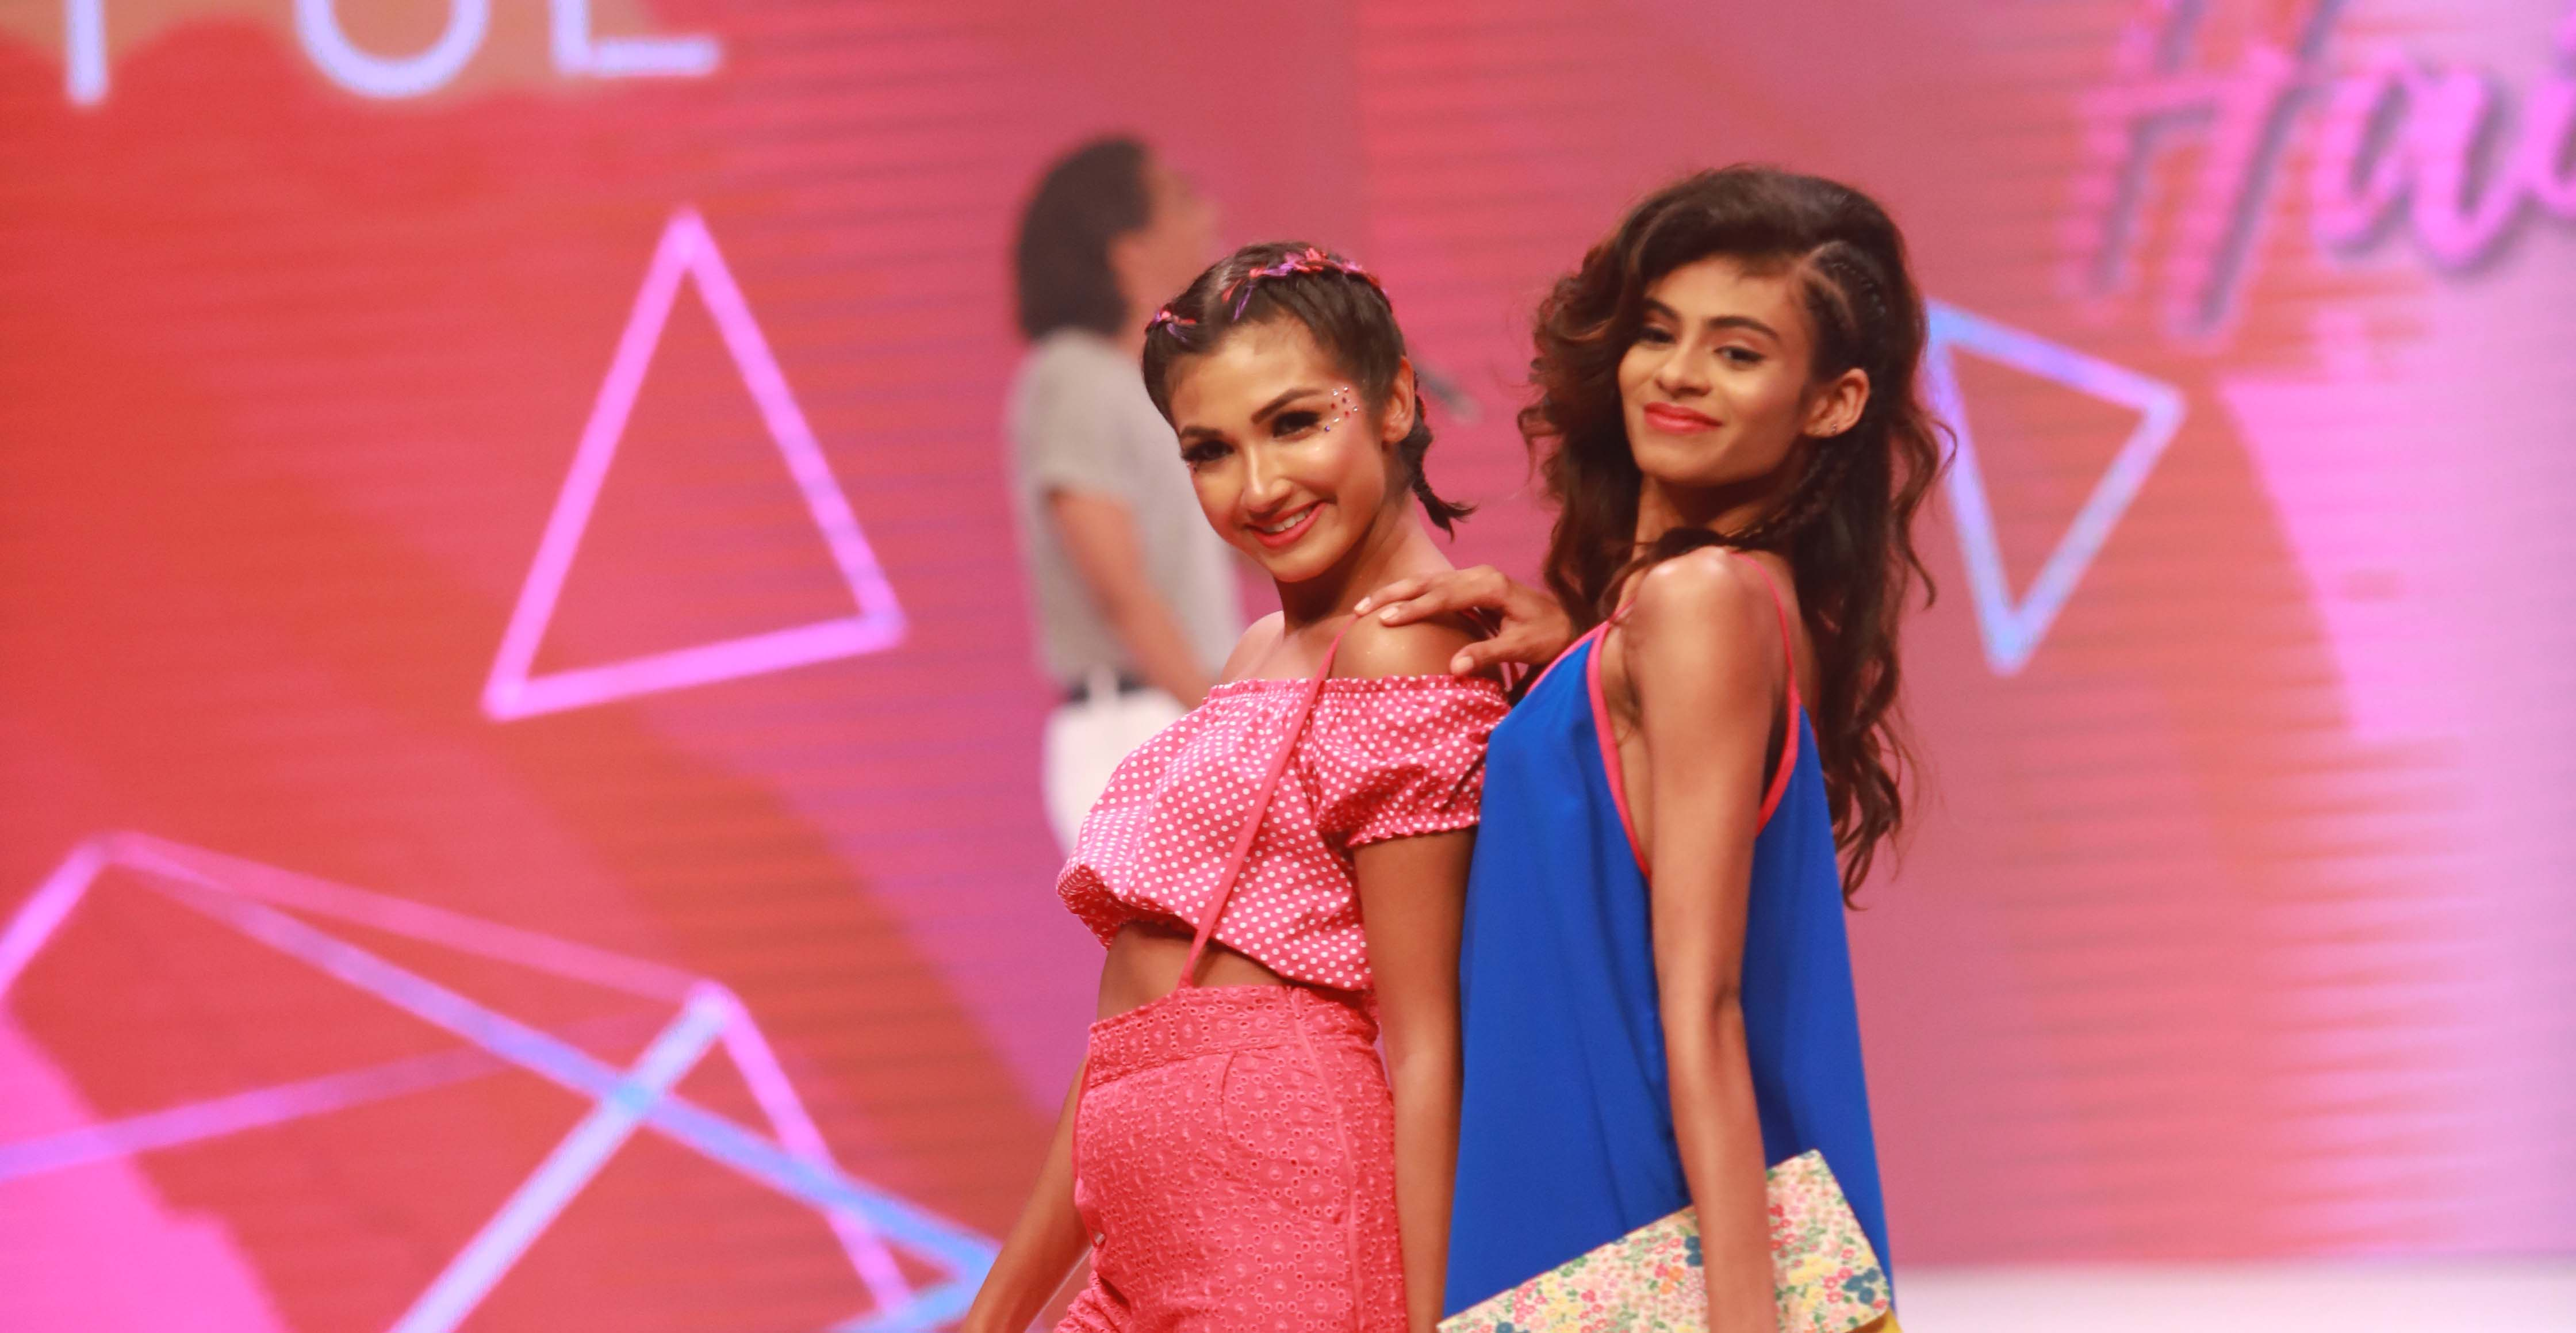 Sunsilk Hairstory 2019 - The Morning - Sri Lanka News